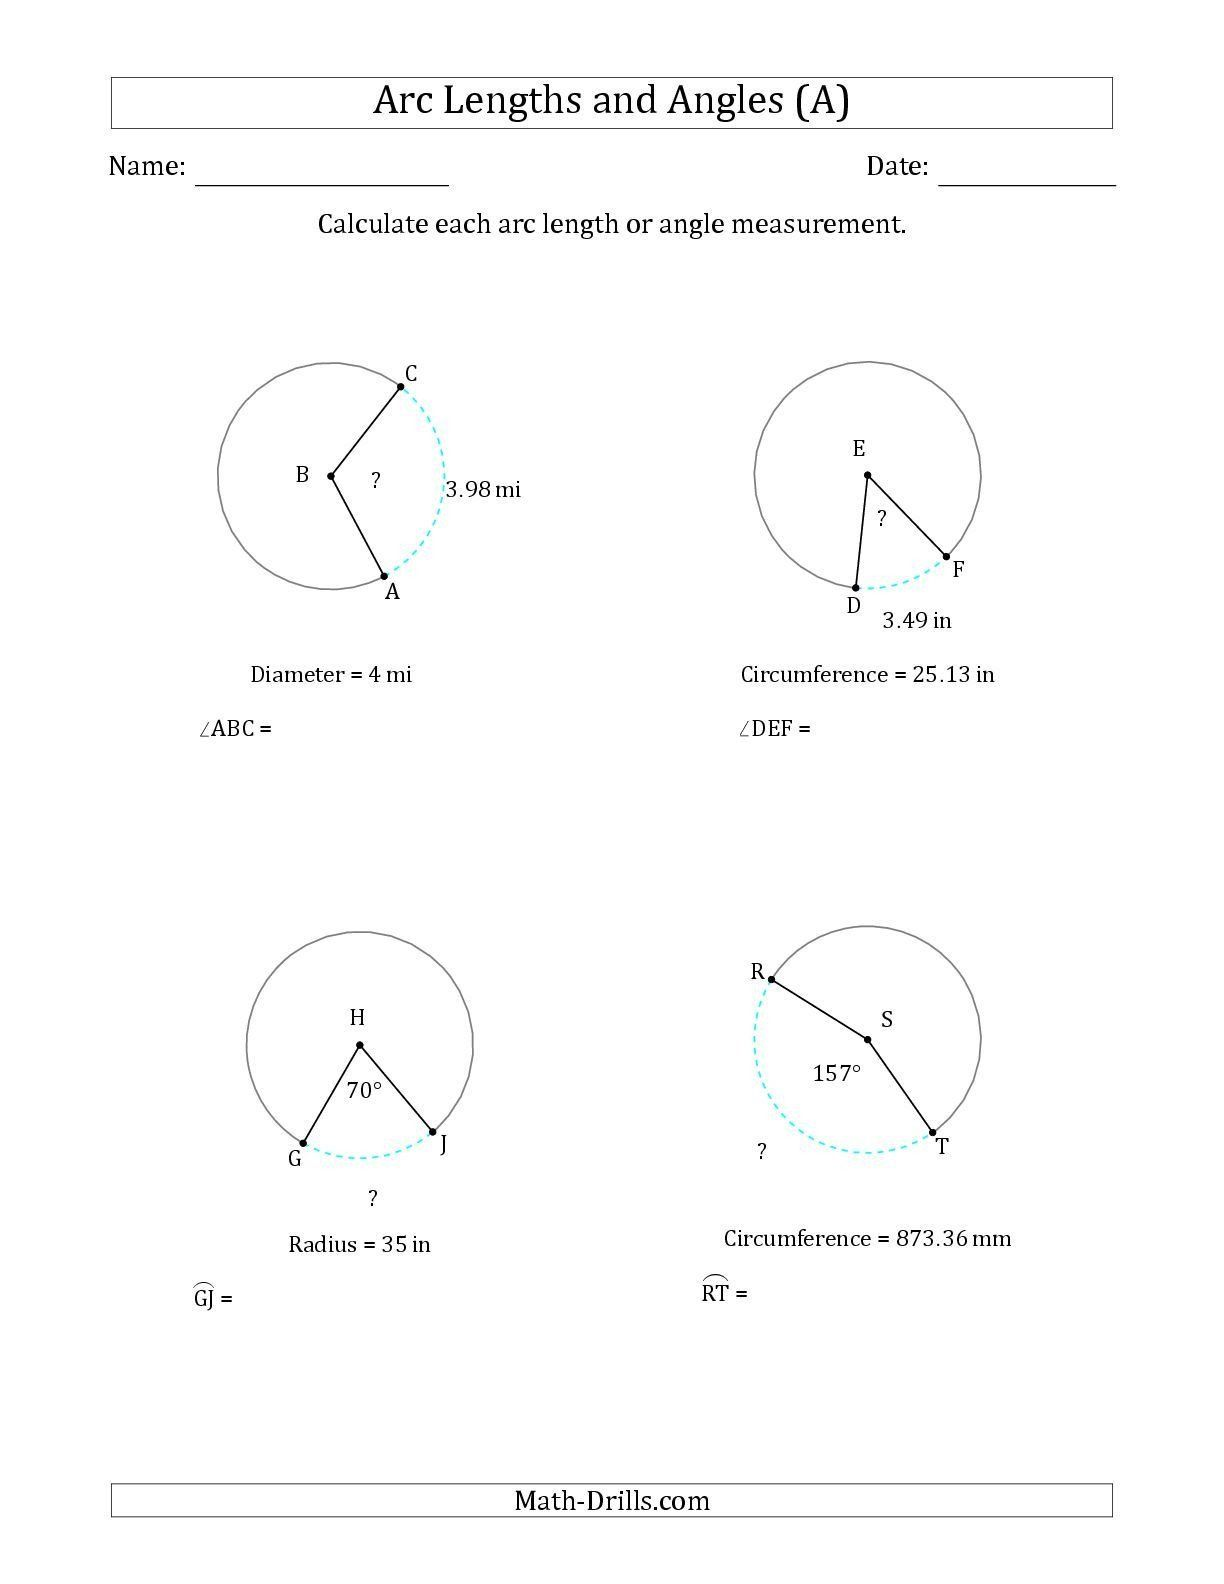 Measuring Angles Worksheet The Calculating Arc Length